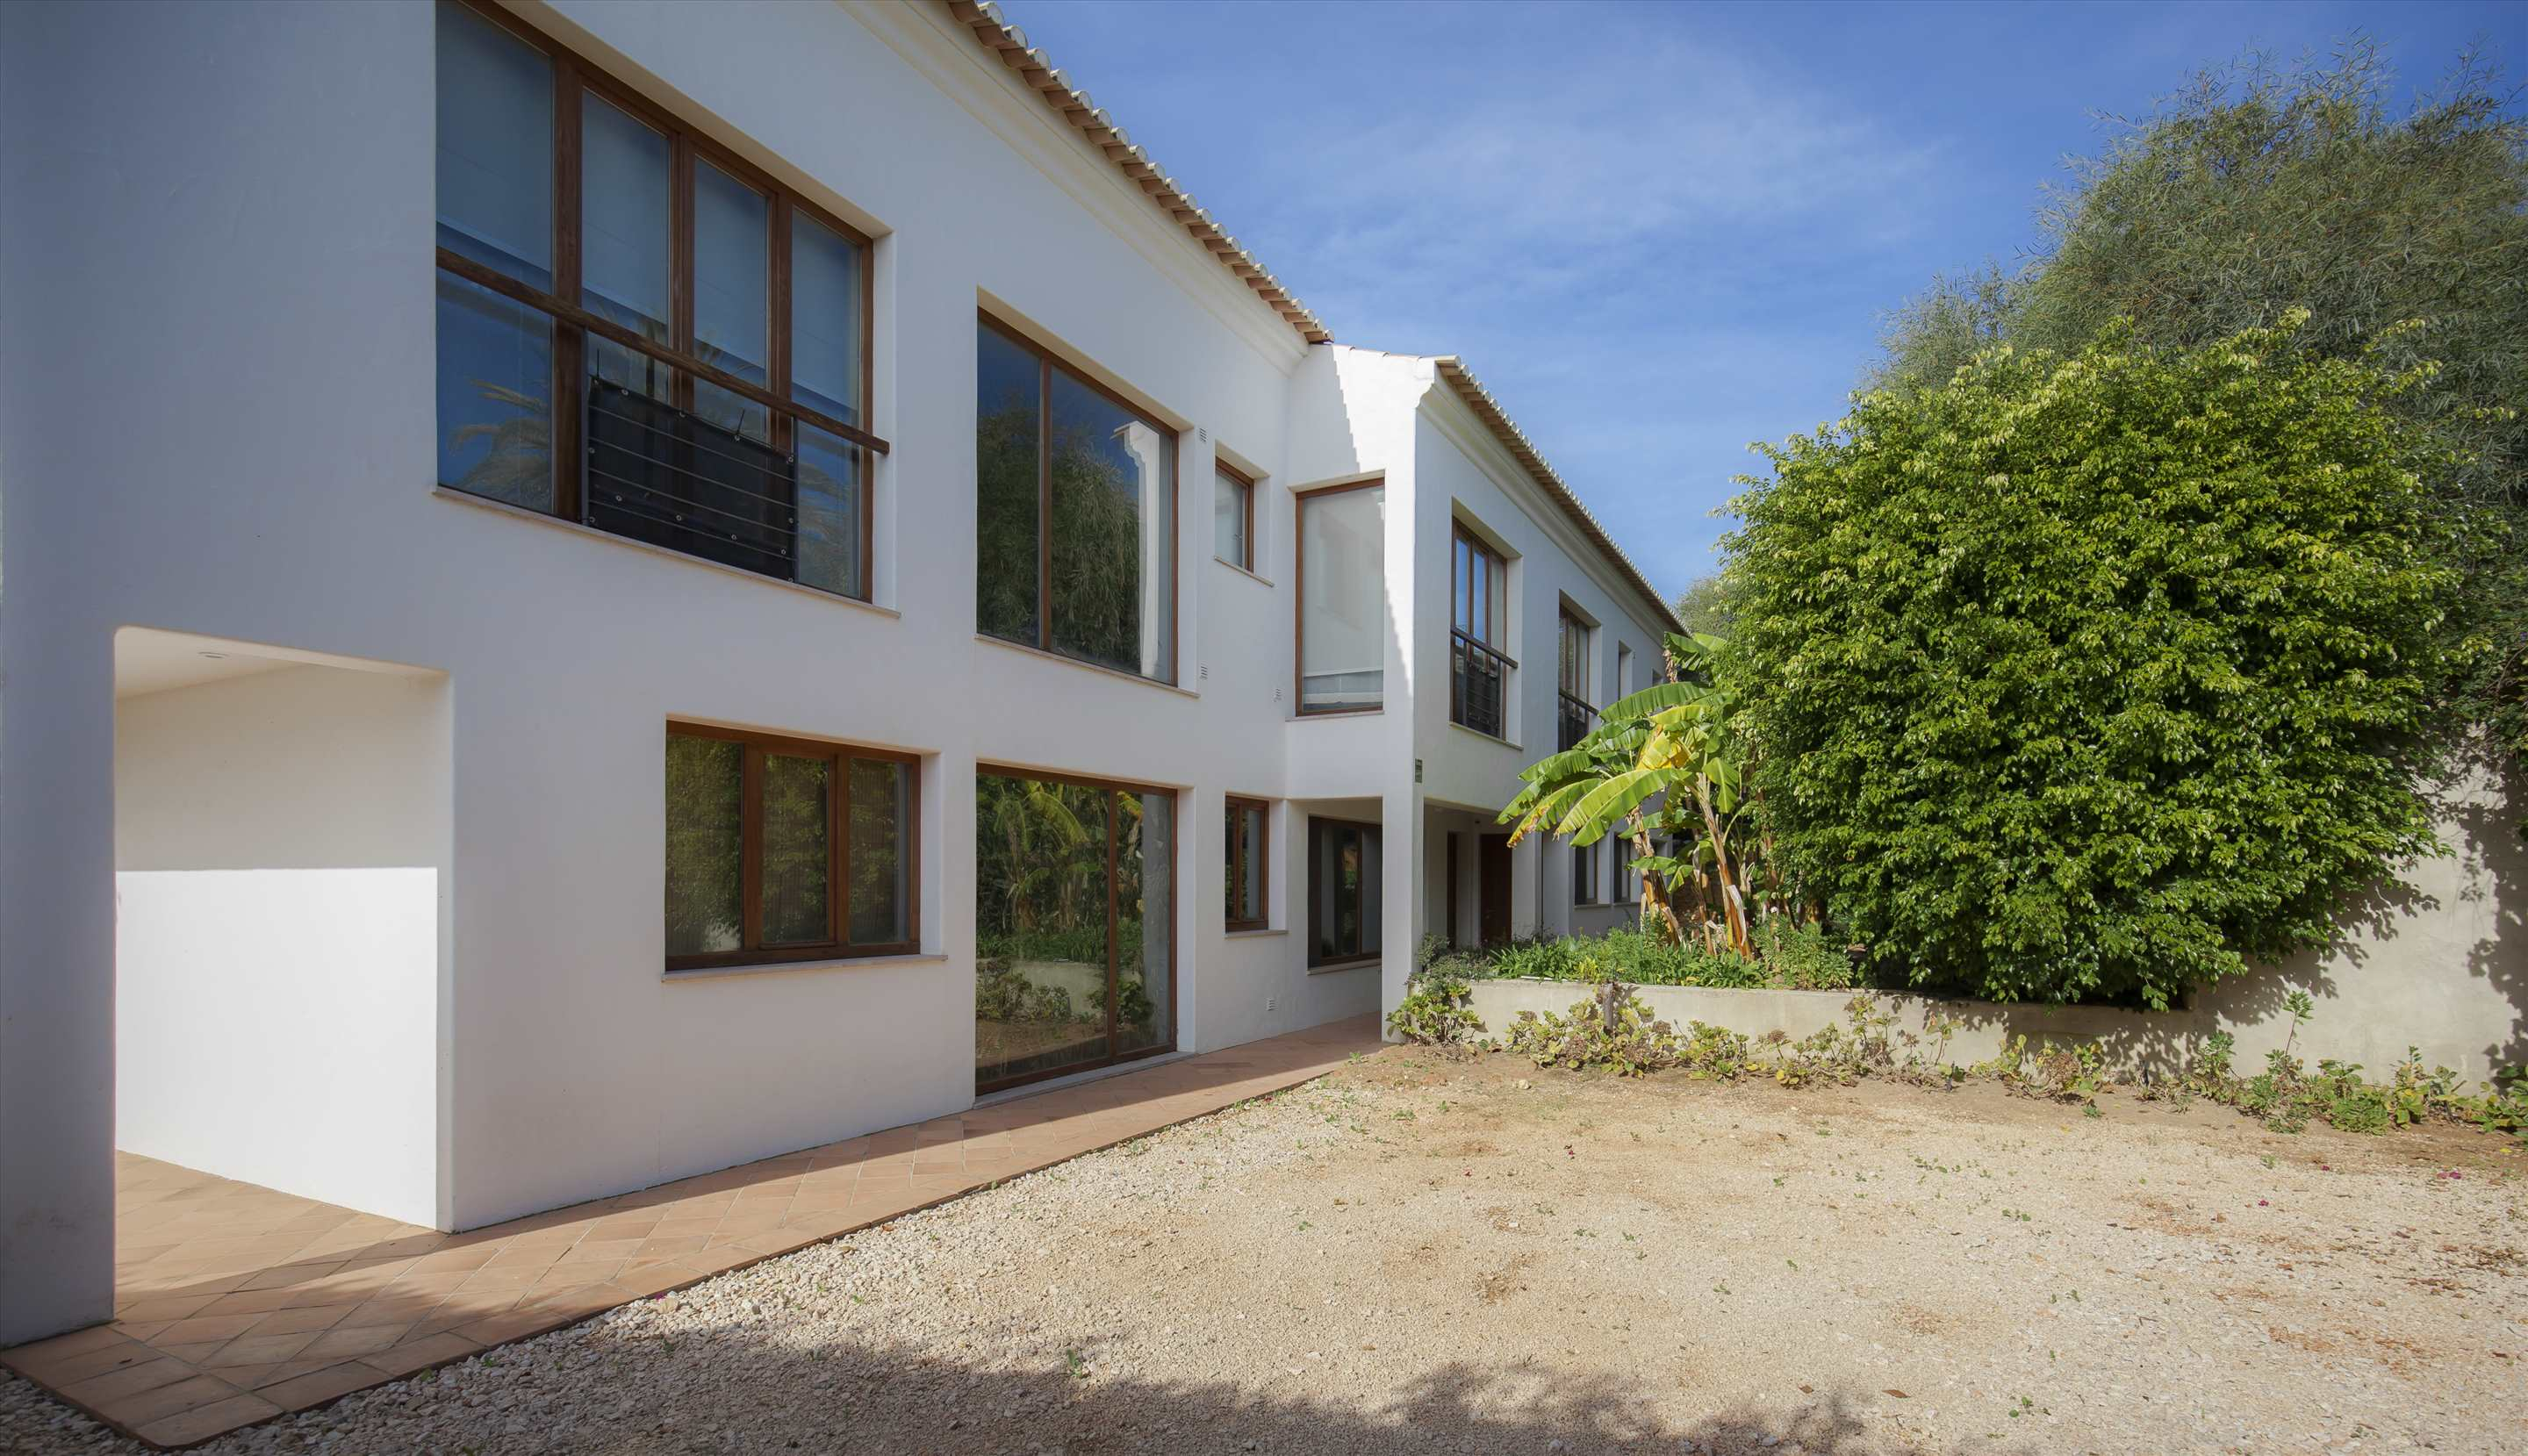 Casa Grande Mós , 8 bedroom villa in Lagos and Praia da Luz, Algarve Photo #27